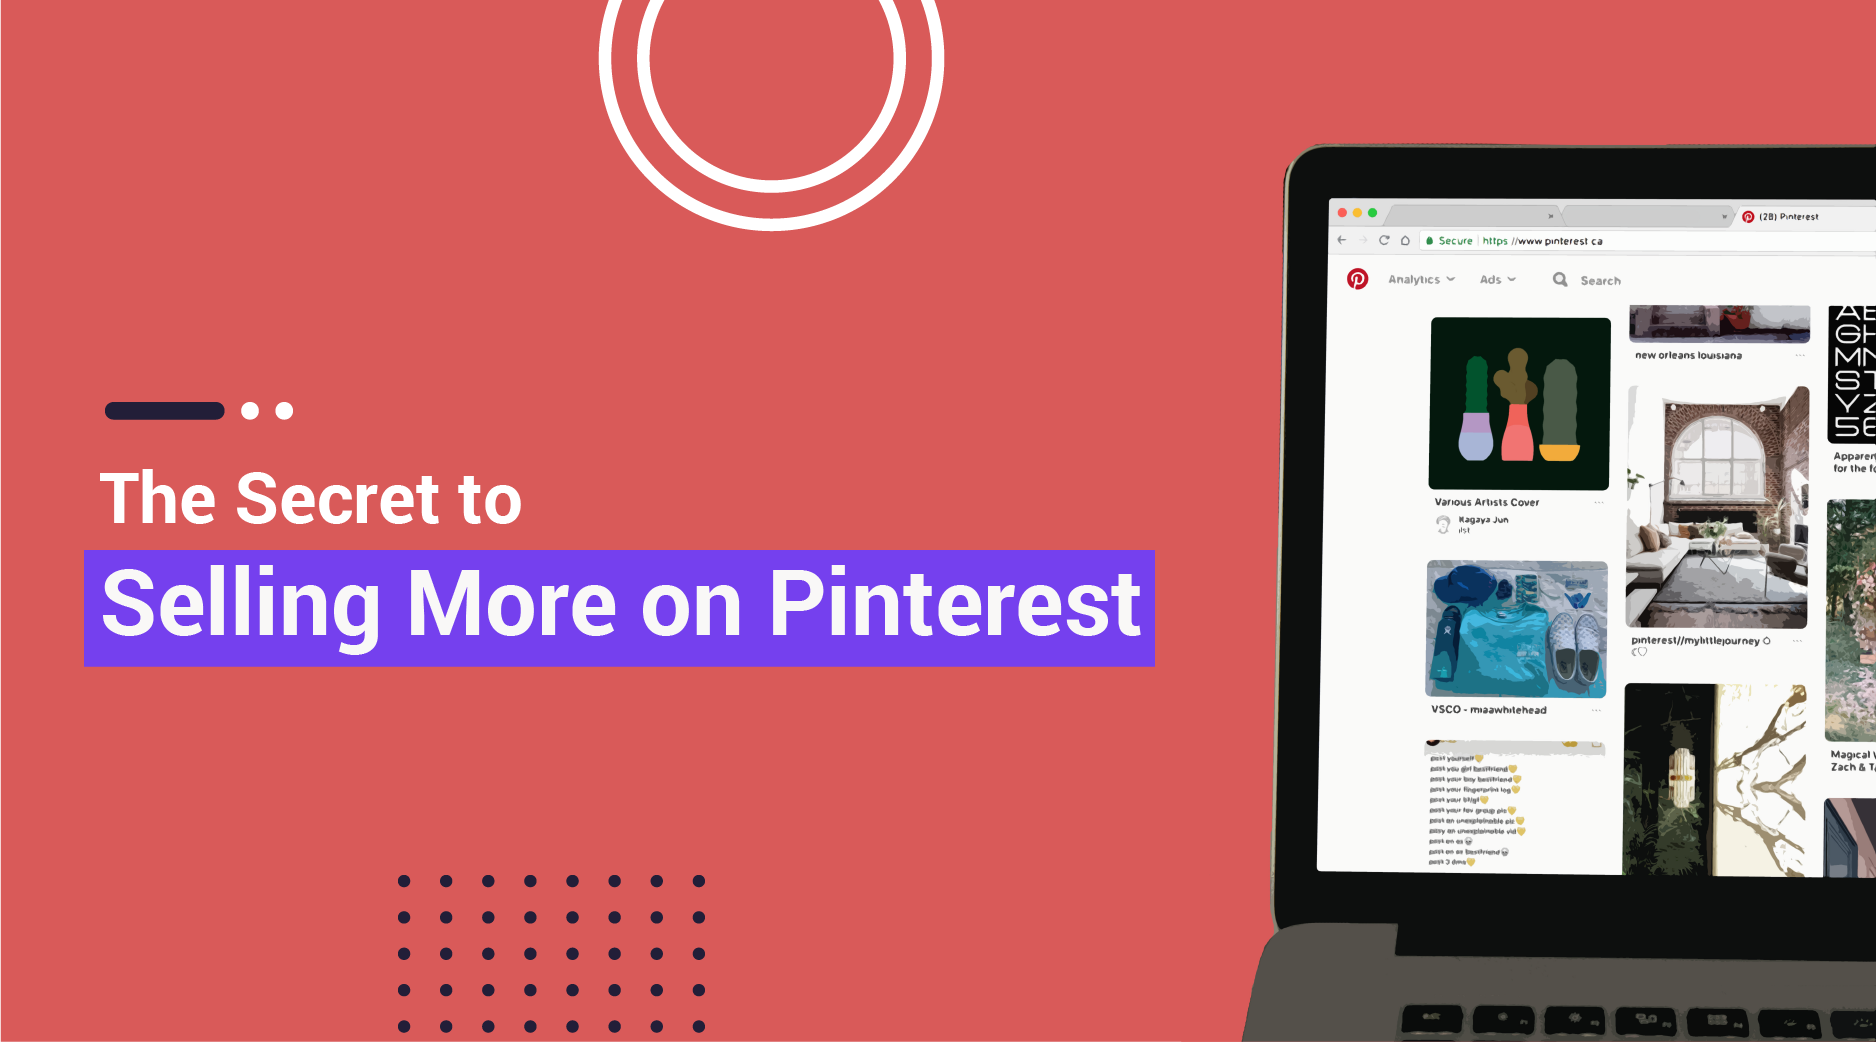 Pinterest: The Ecommerce Brand's Favorite Social Channel Decoded